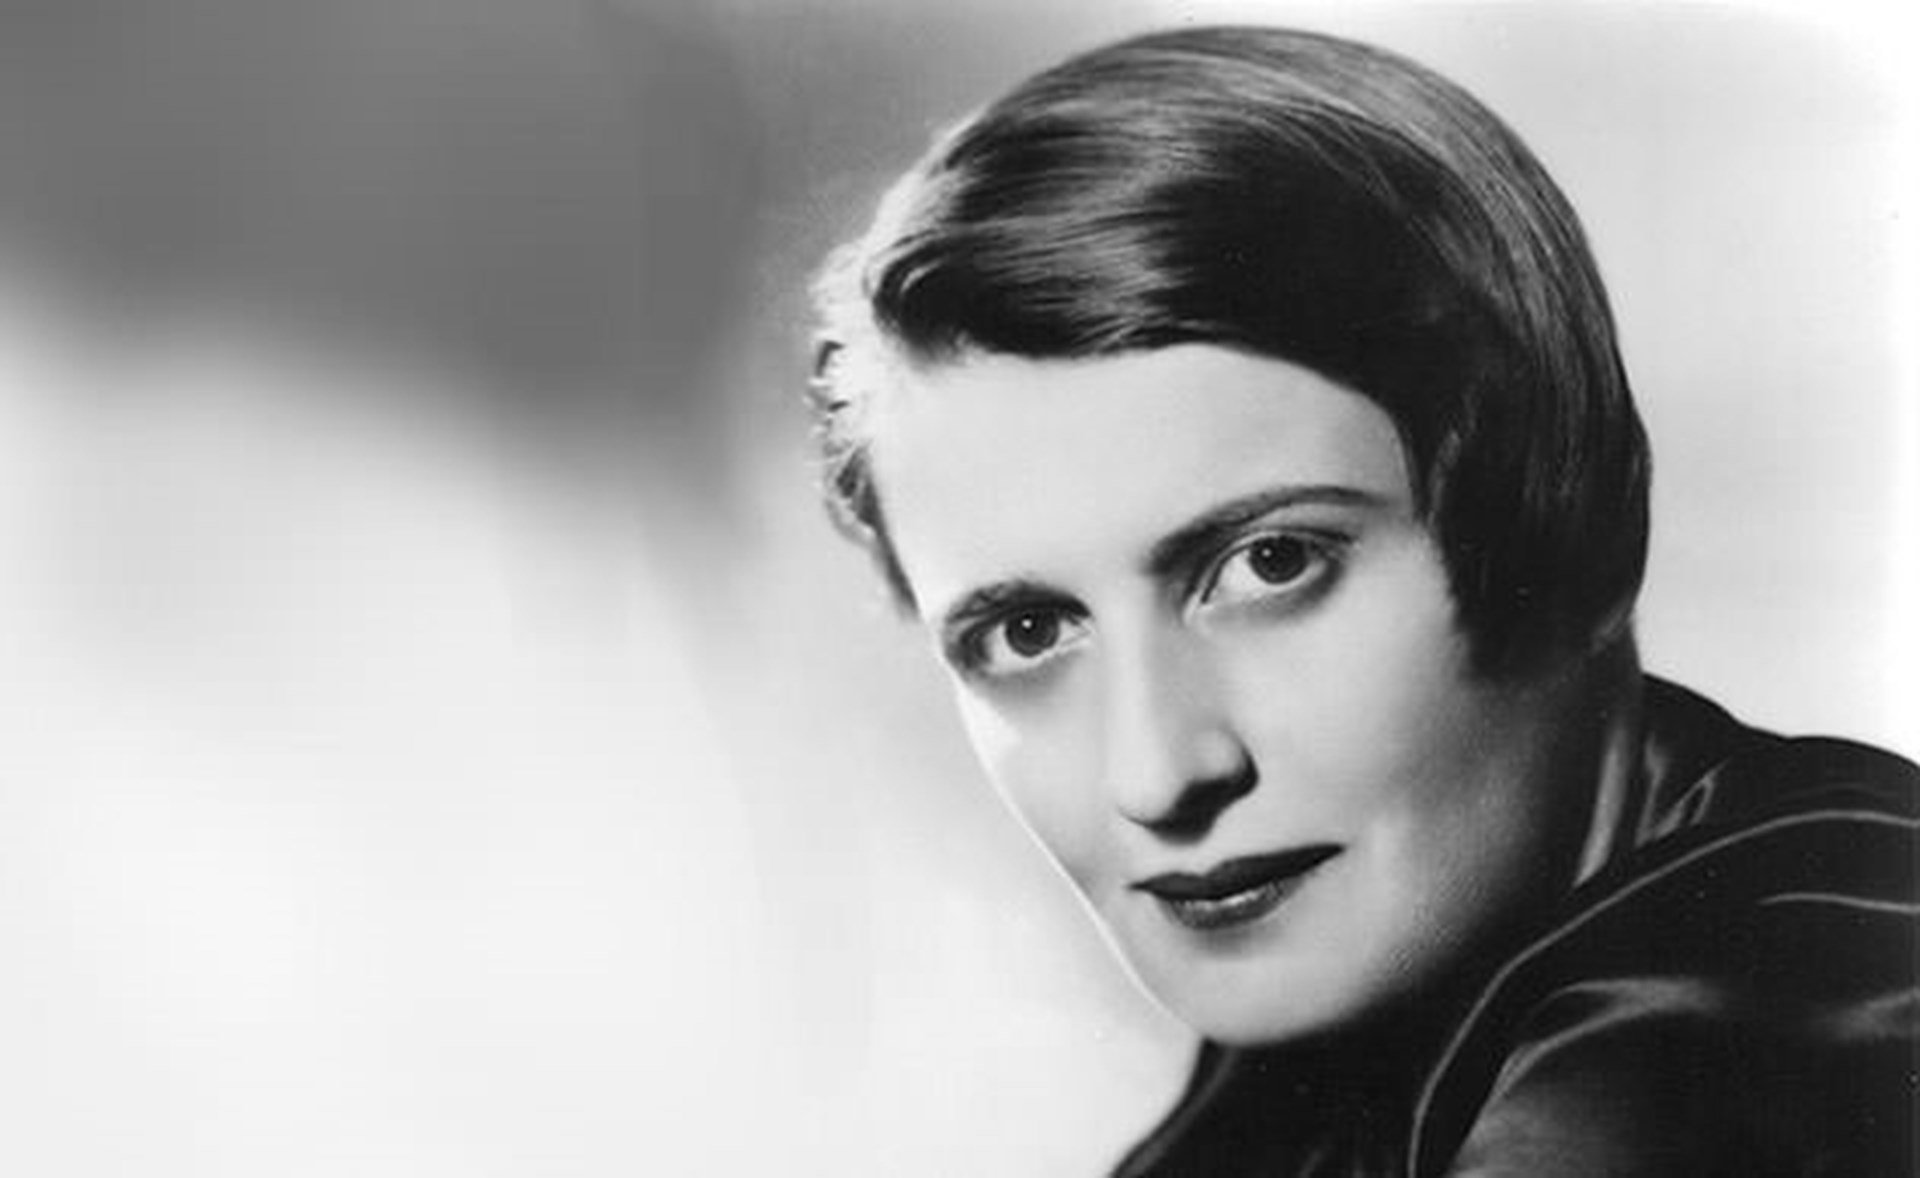 Andrew Klavan and Bill Whittle Pretend to Analyze Ayn Rand - The Objective Standard